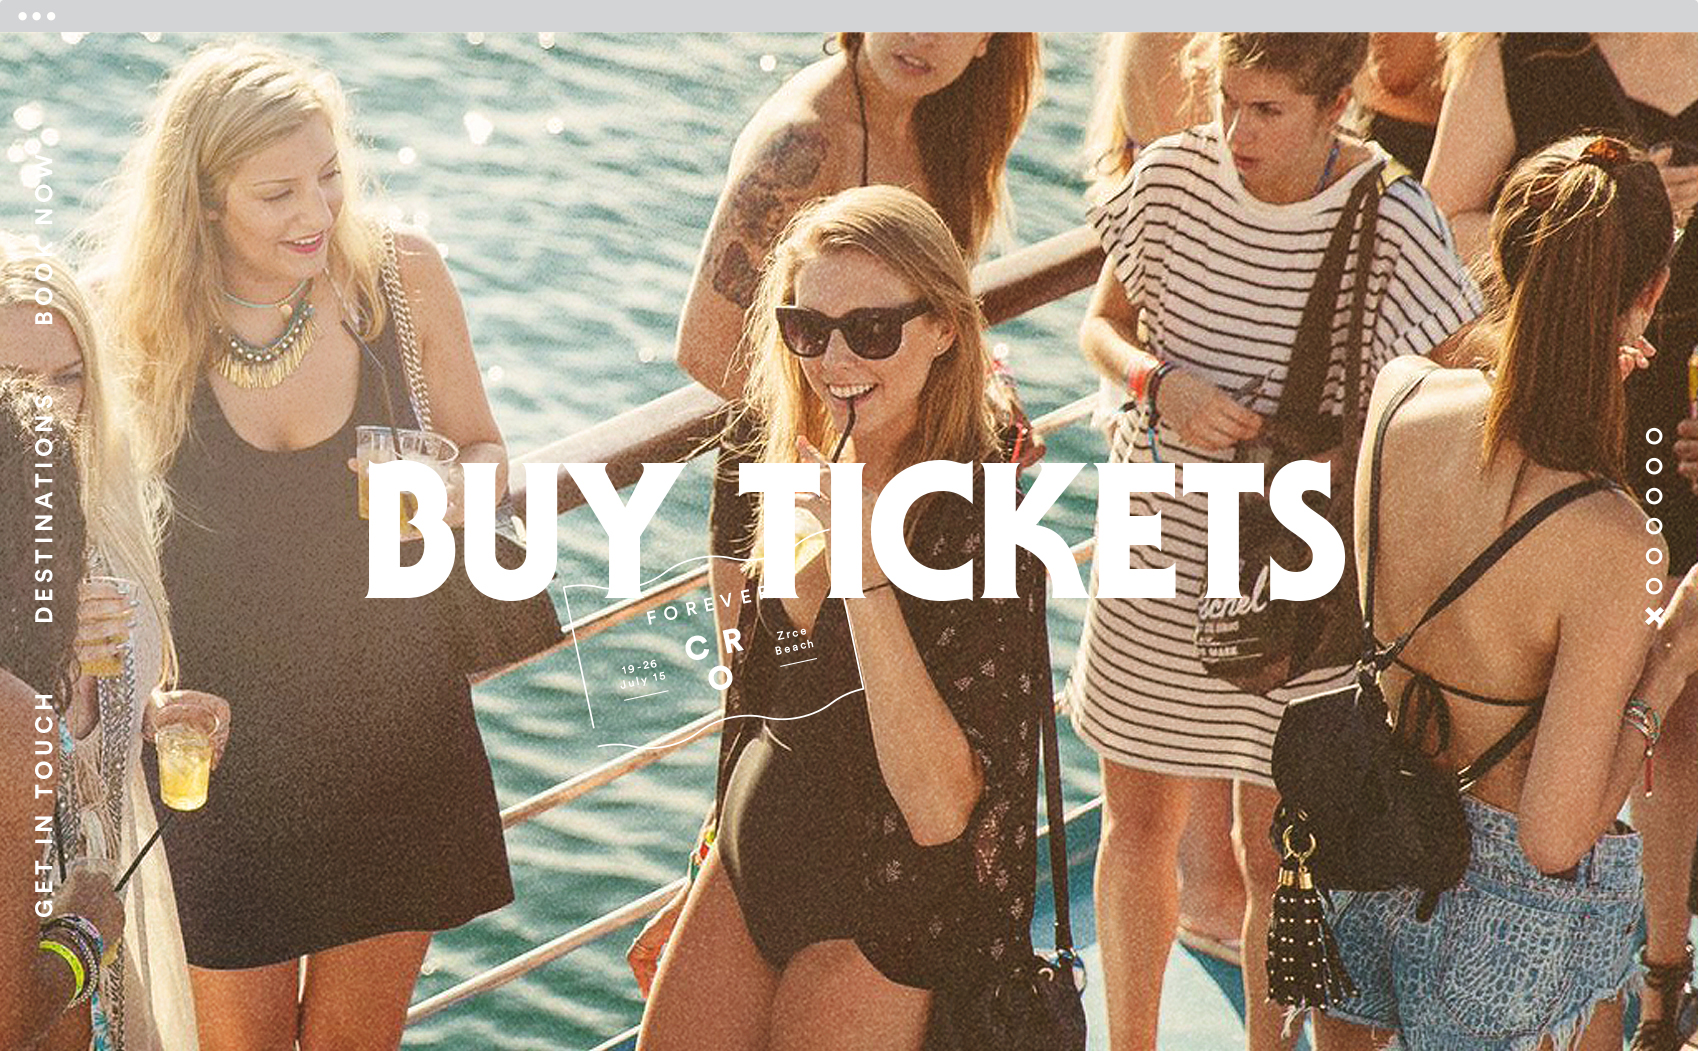 tickets-page